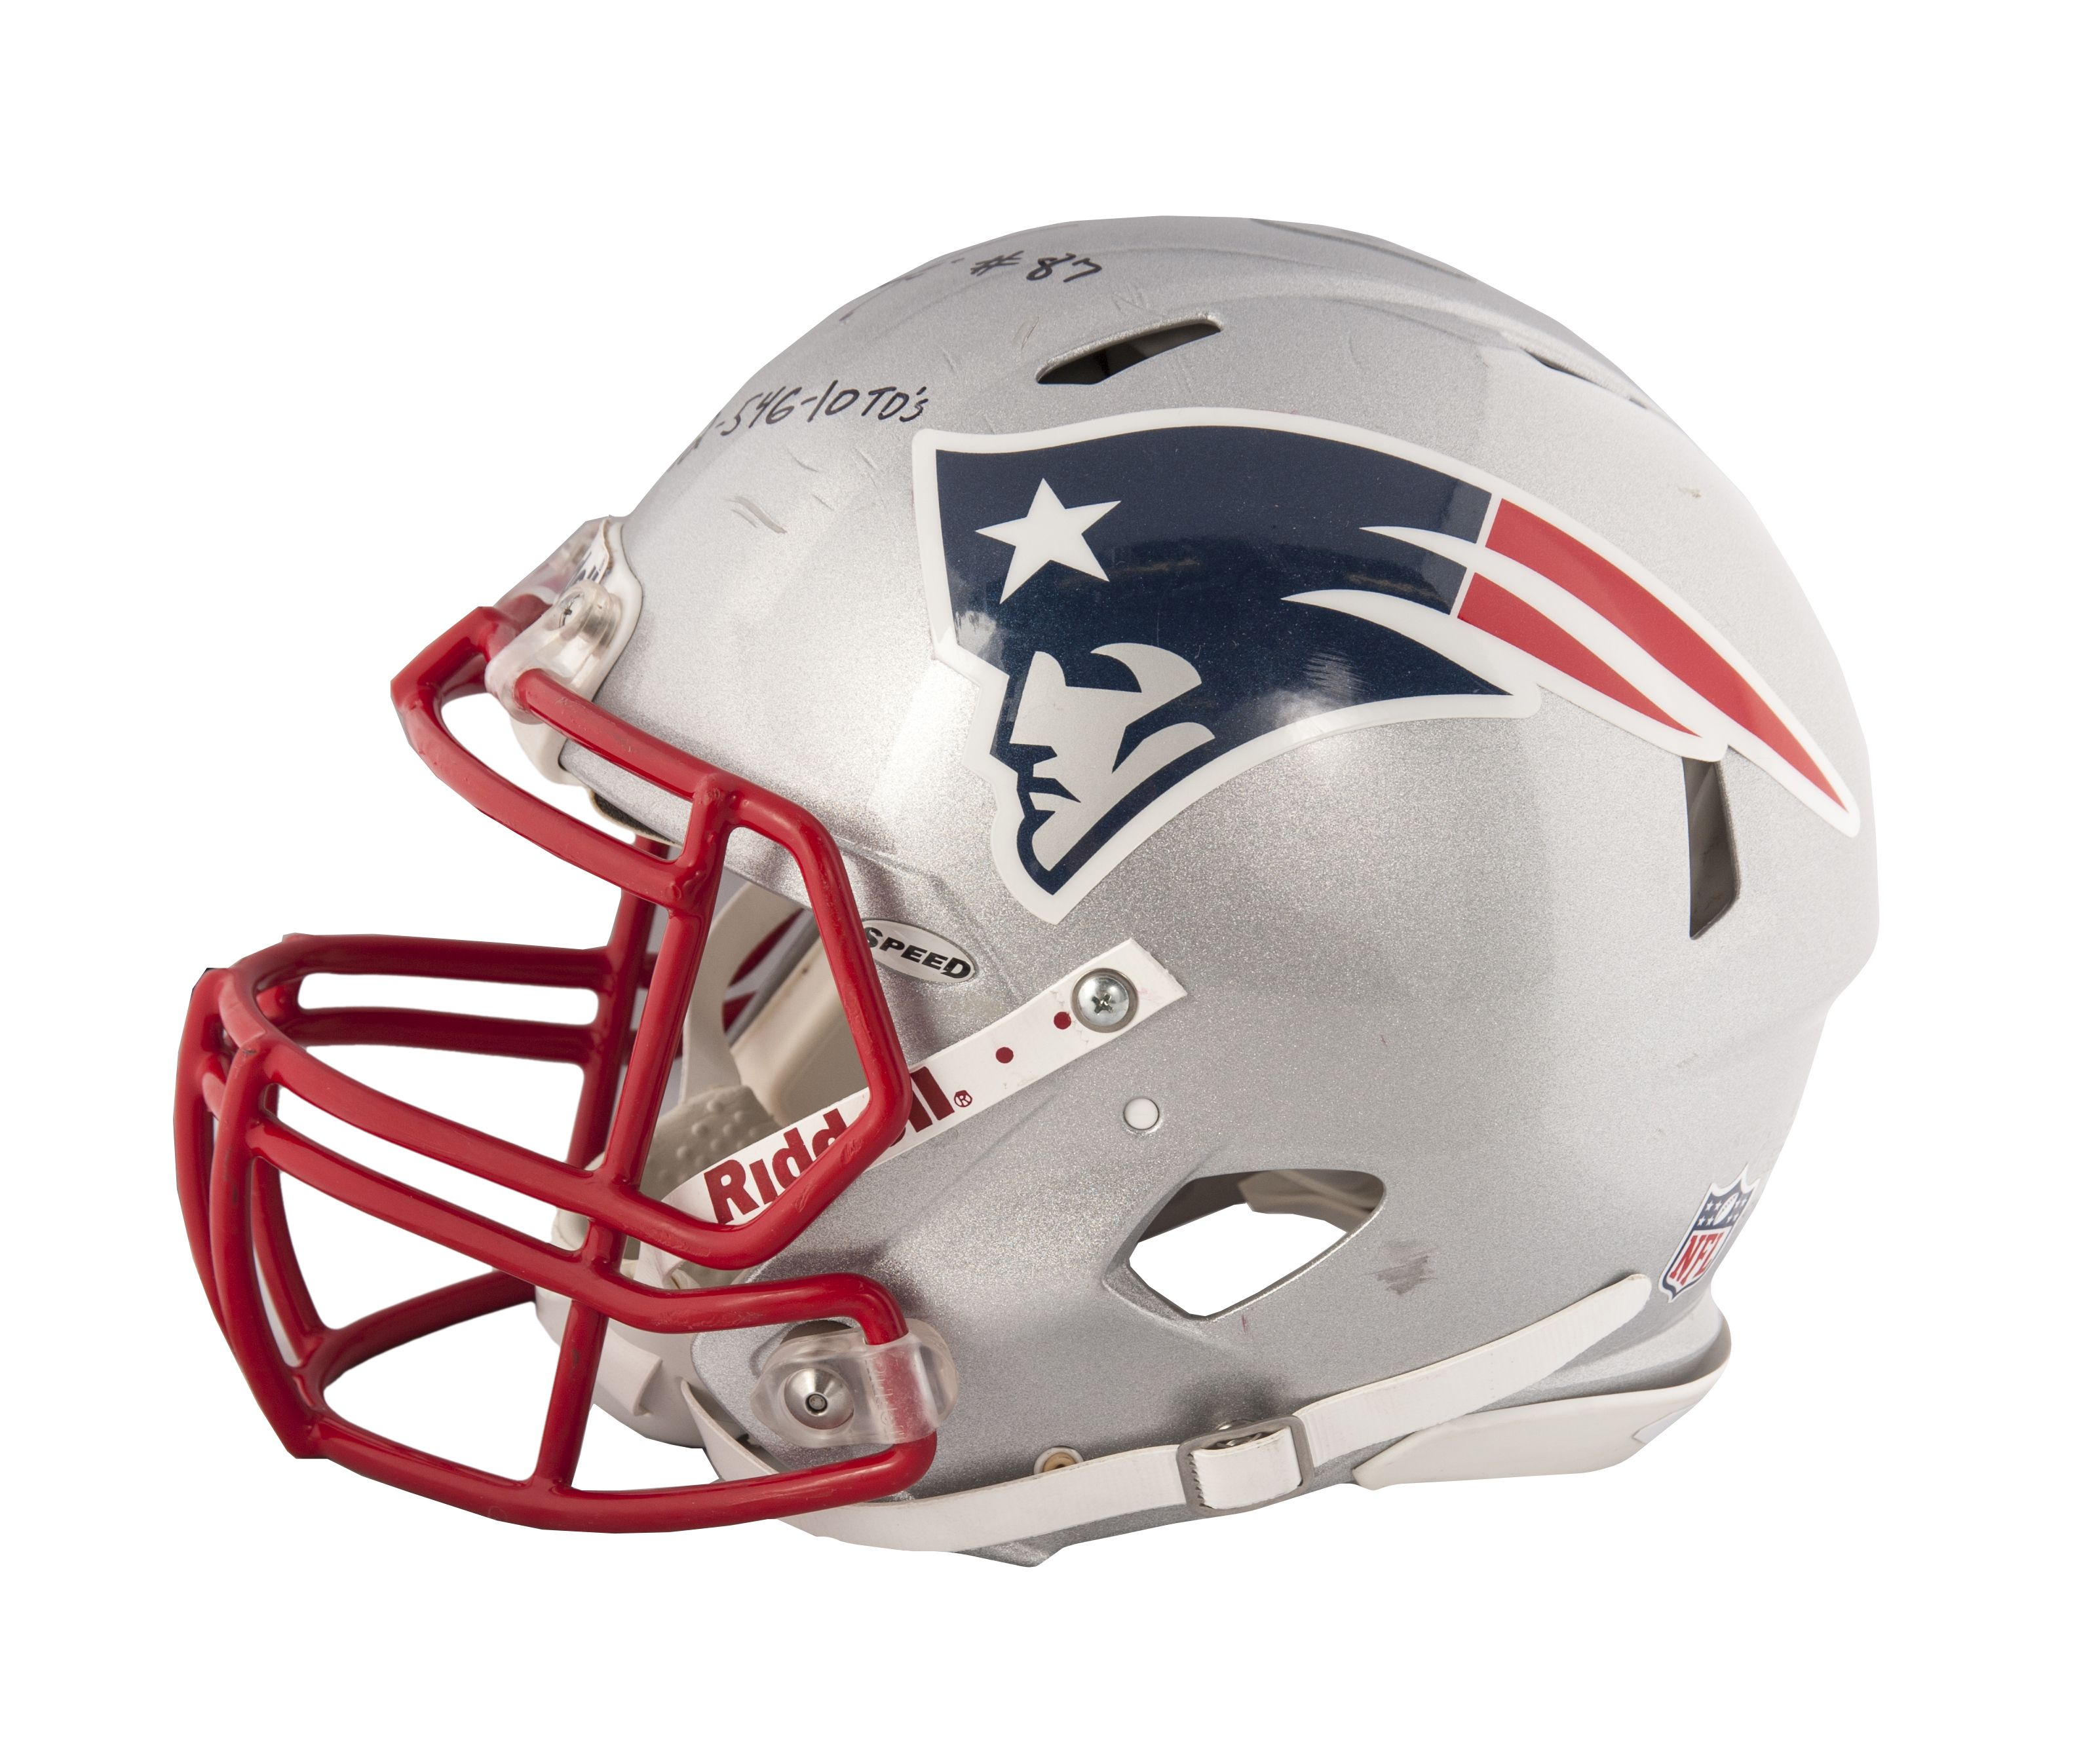 Superbowl53 Is Here - #Rams #Patriots Packages Here, Now